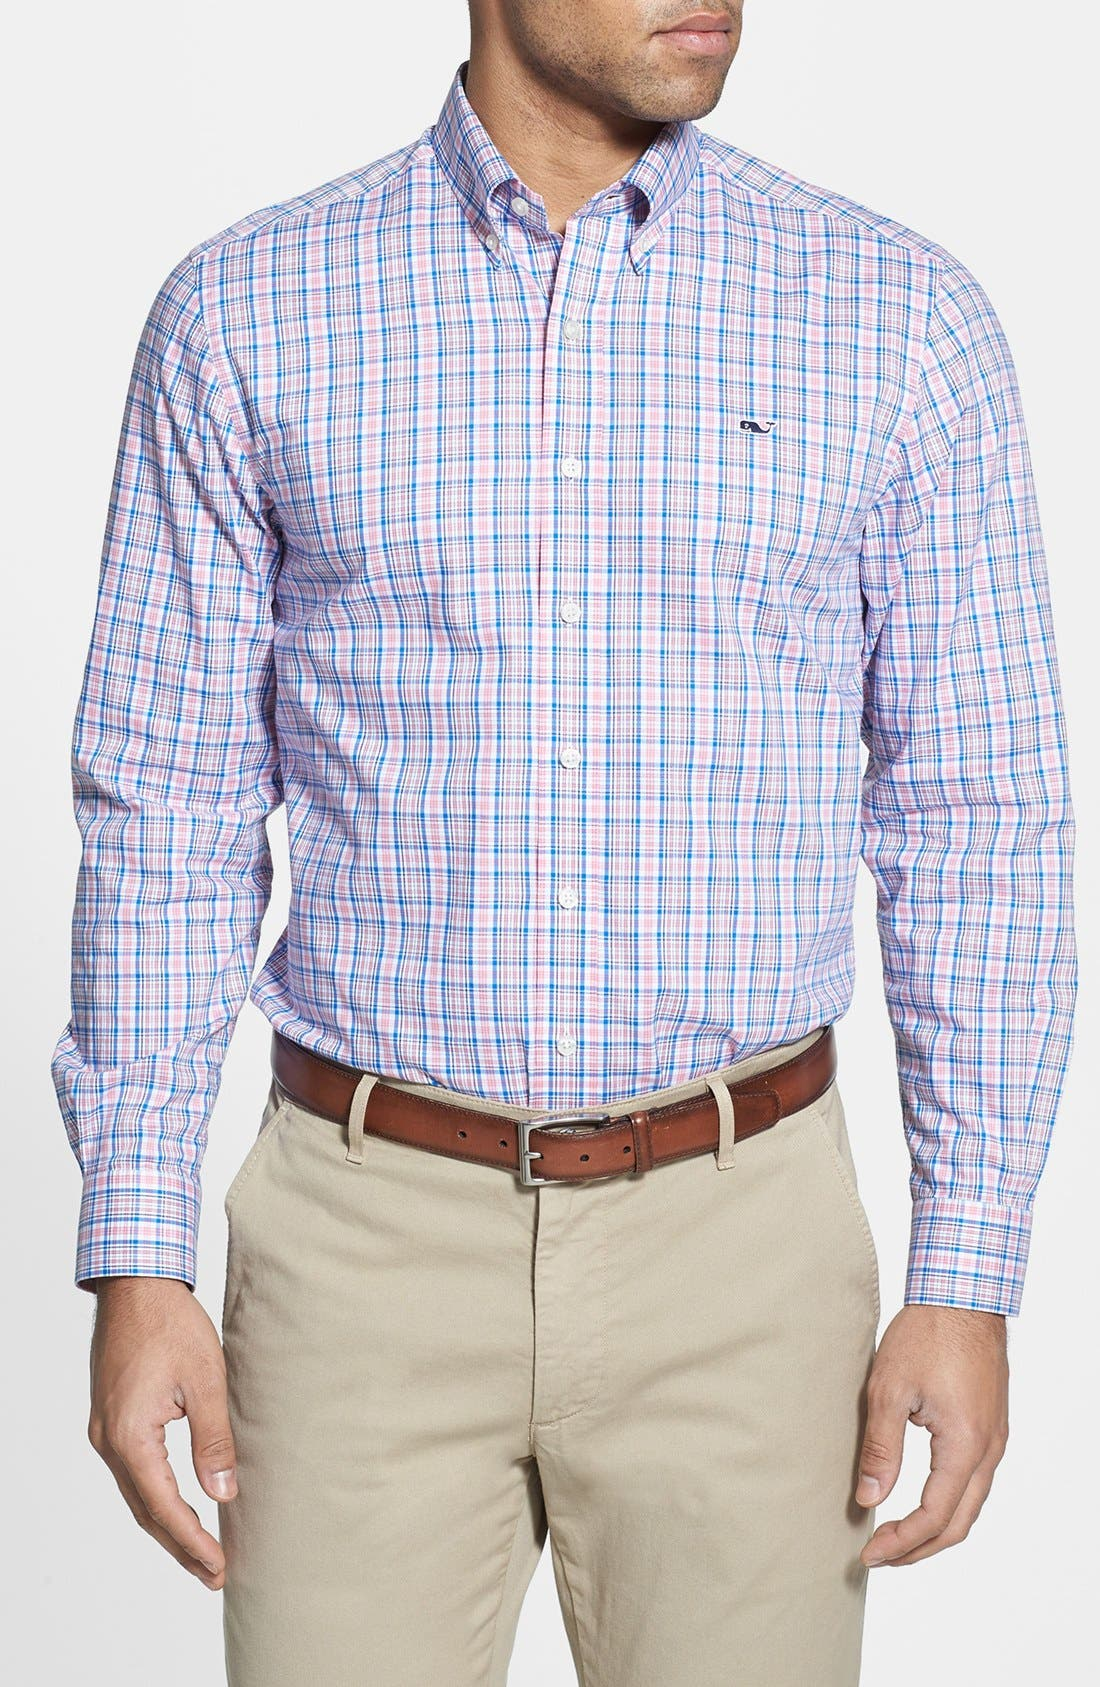 Alternate Image 1 Selected - Vineyard Vines 'Whale - Bayberry' Check Slim Fit Sport Shirt